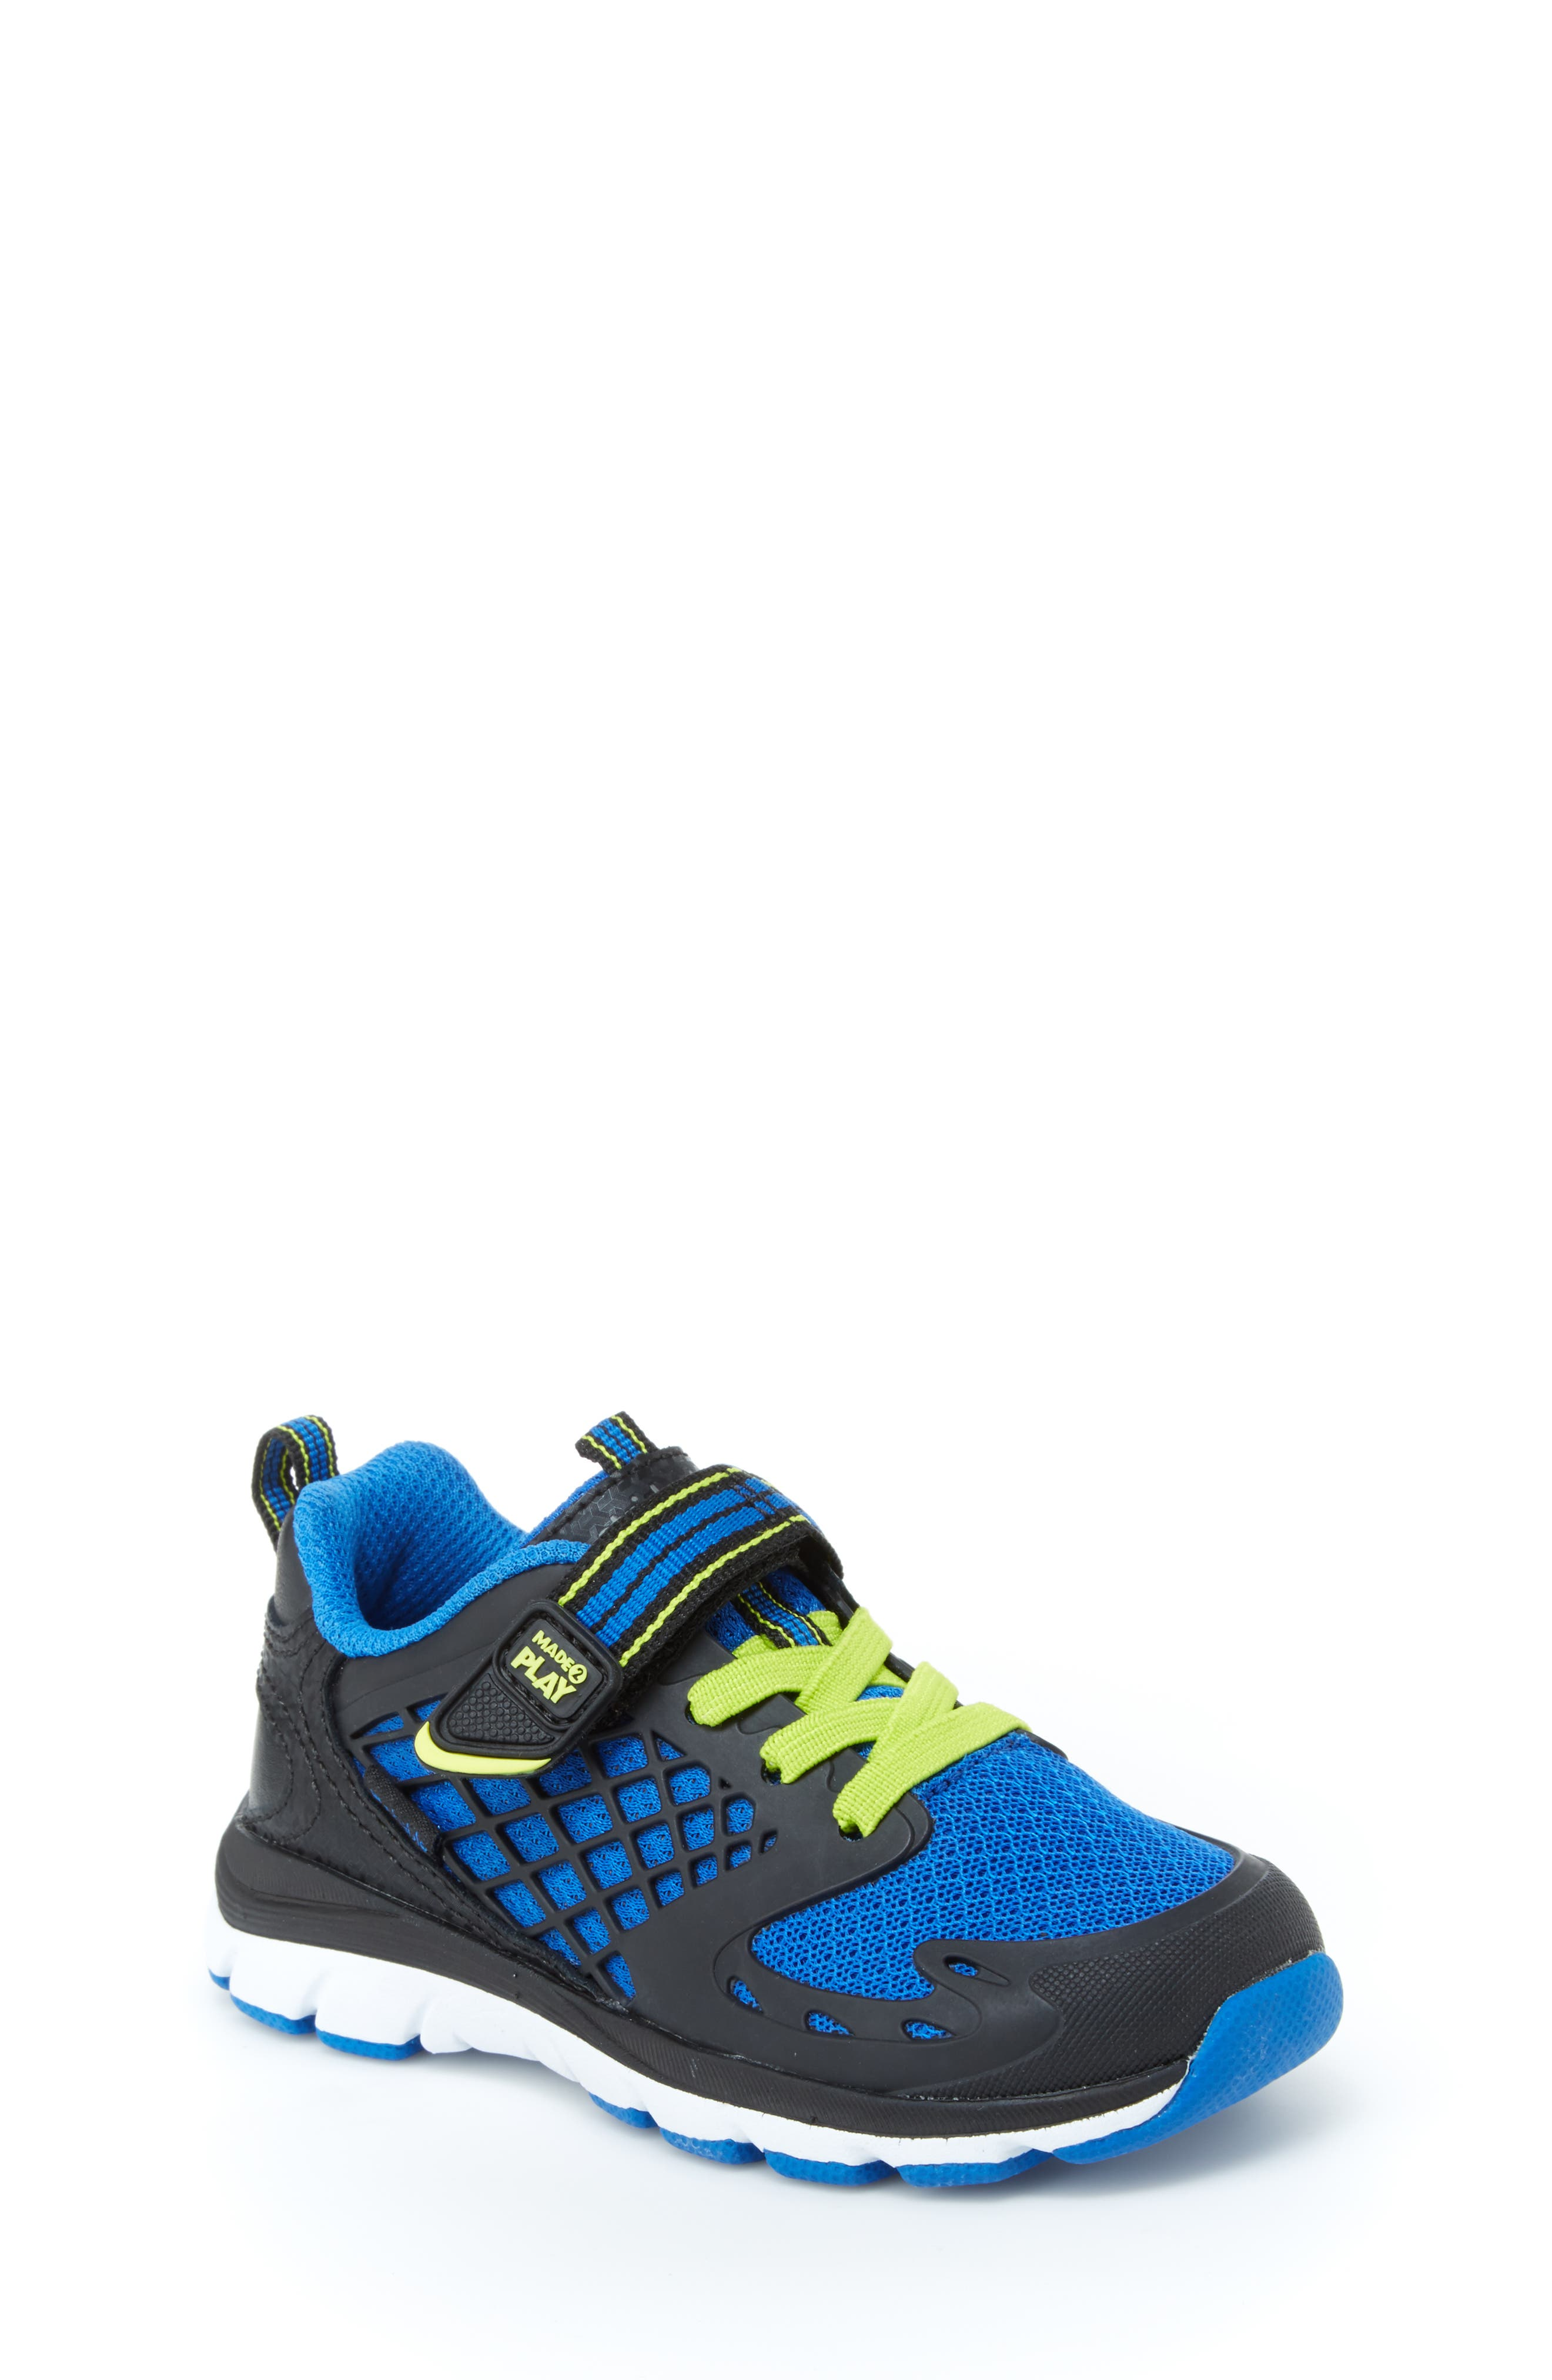 Made 2 Play Breccen Sneaker,                             Main thumbnail 1, color,                             BLACK/ LIME